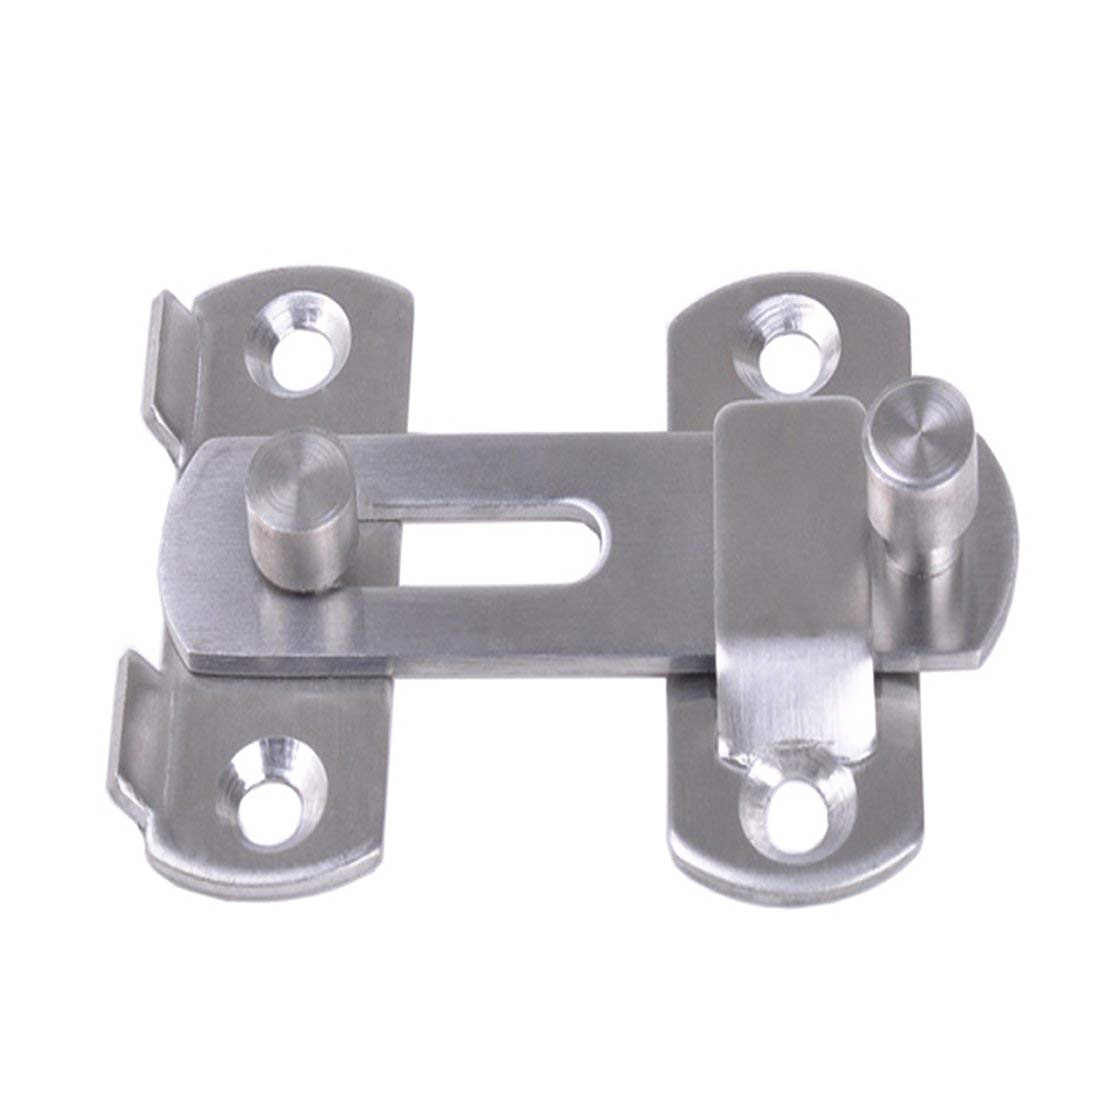 Hasp Latches Stainless Steel Hasp Latch Lock Sliding Door Chain Locks Security Tools Hardware For Window Cabinet